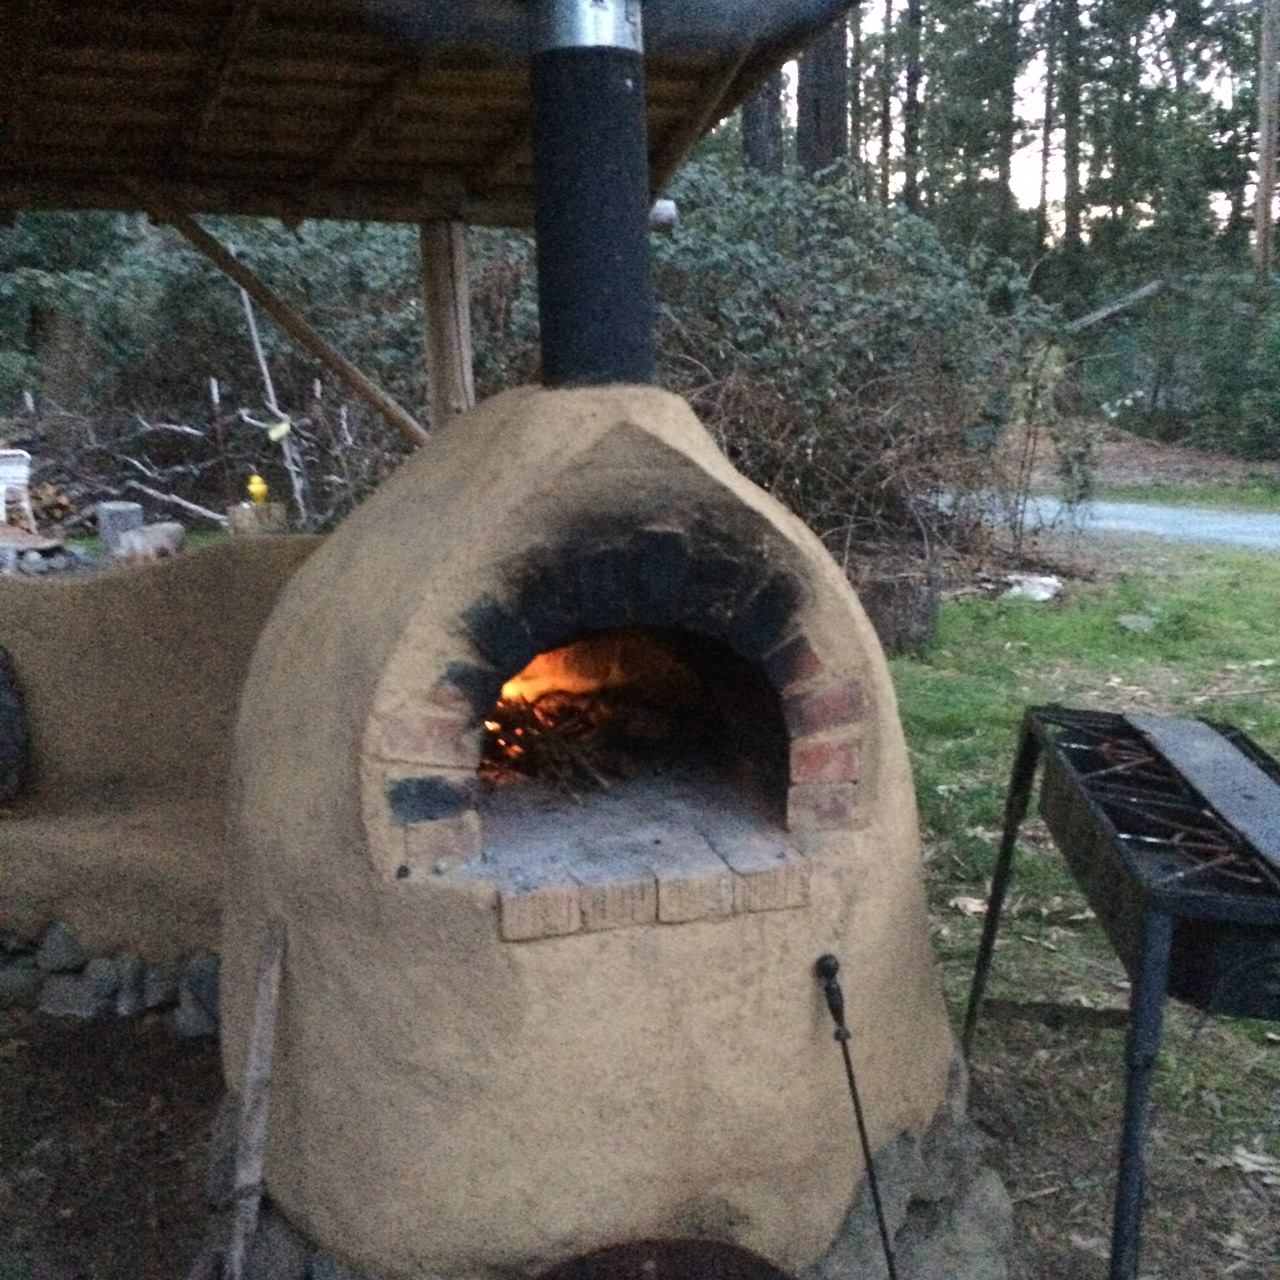 The cob oven at Laytonville Ecovillage is a gathering place— come join us as an intern or work-trader!